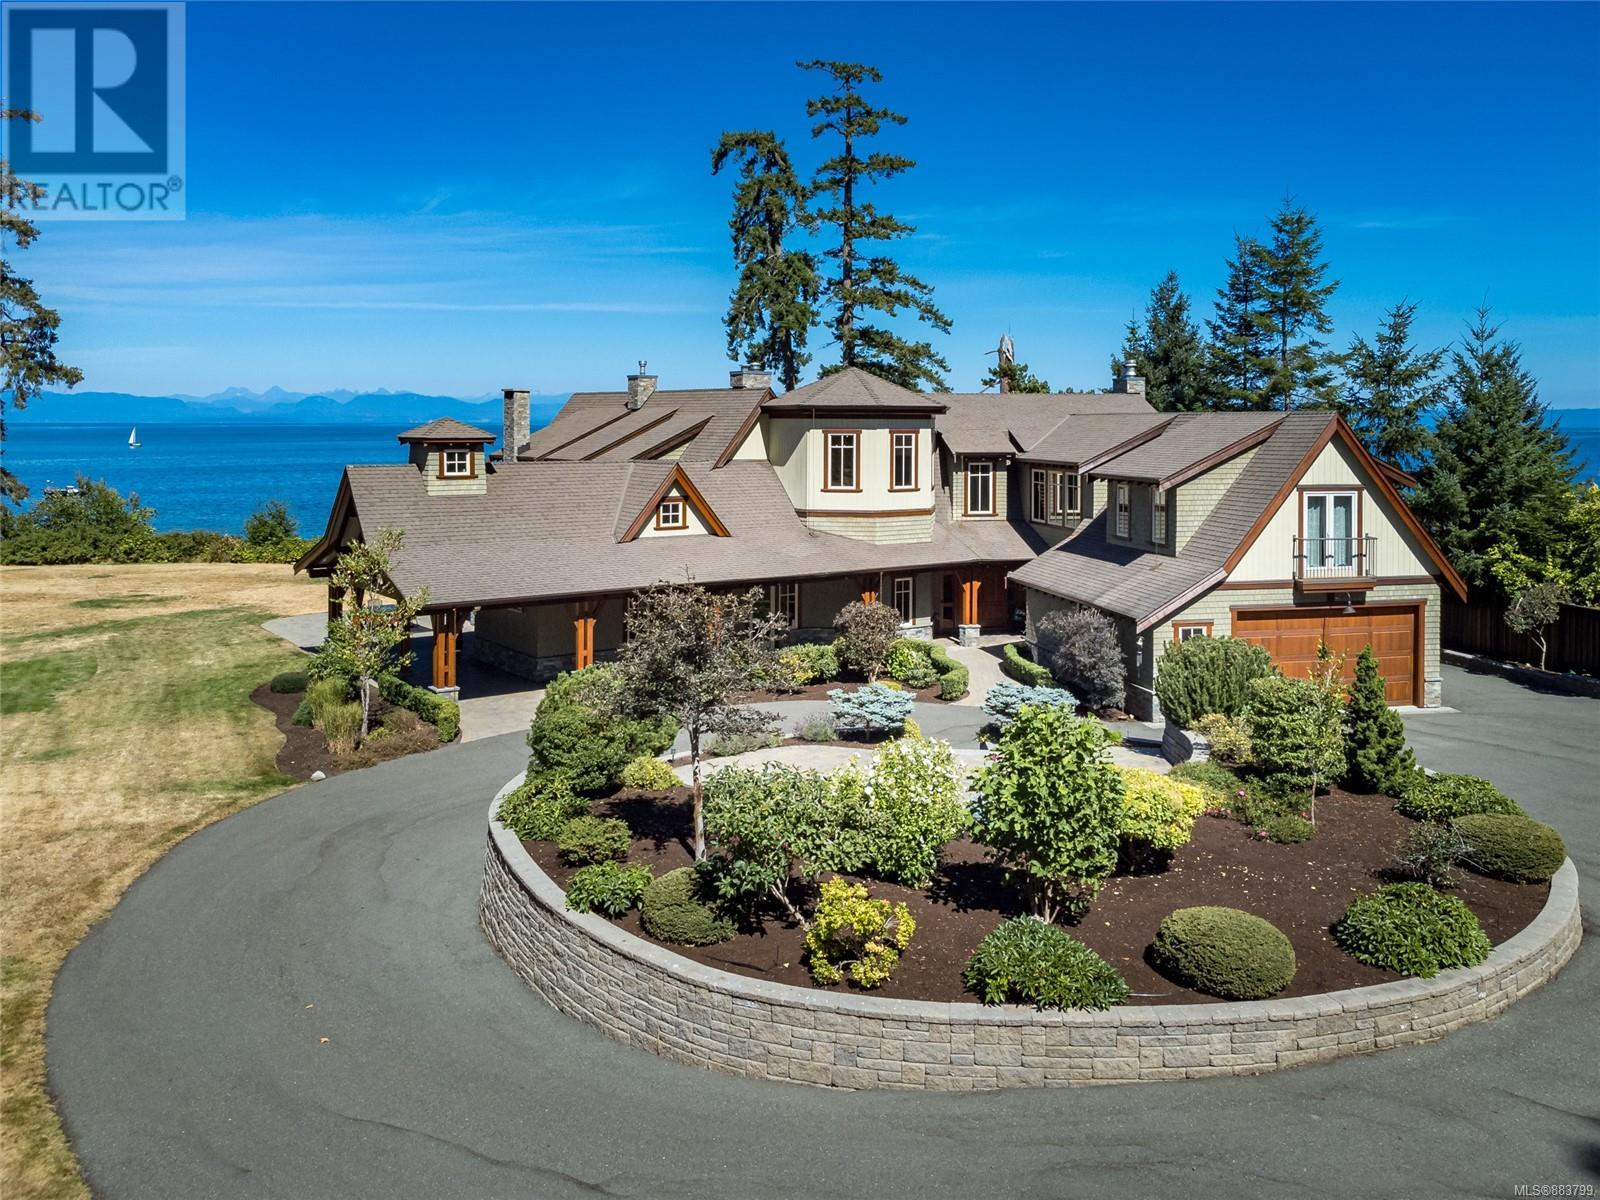 MLS® #883799 - Courtenay House For sale Image #4